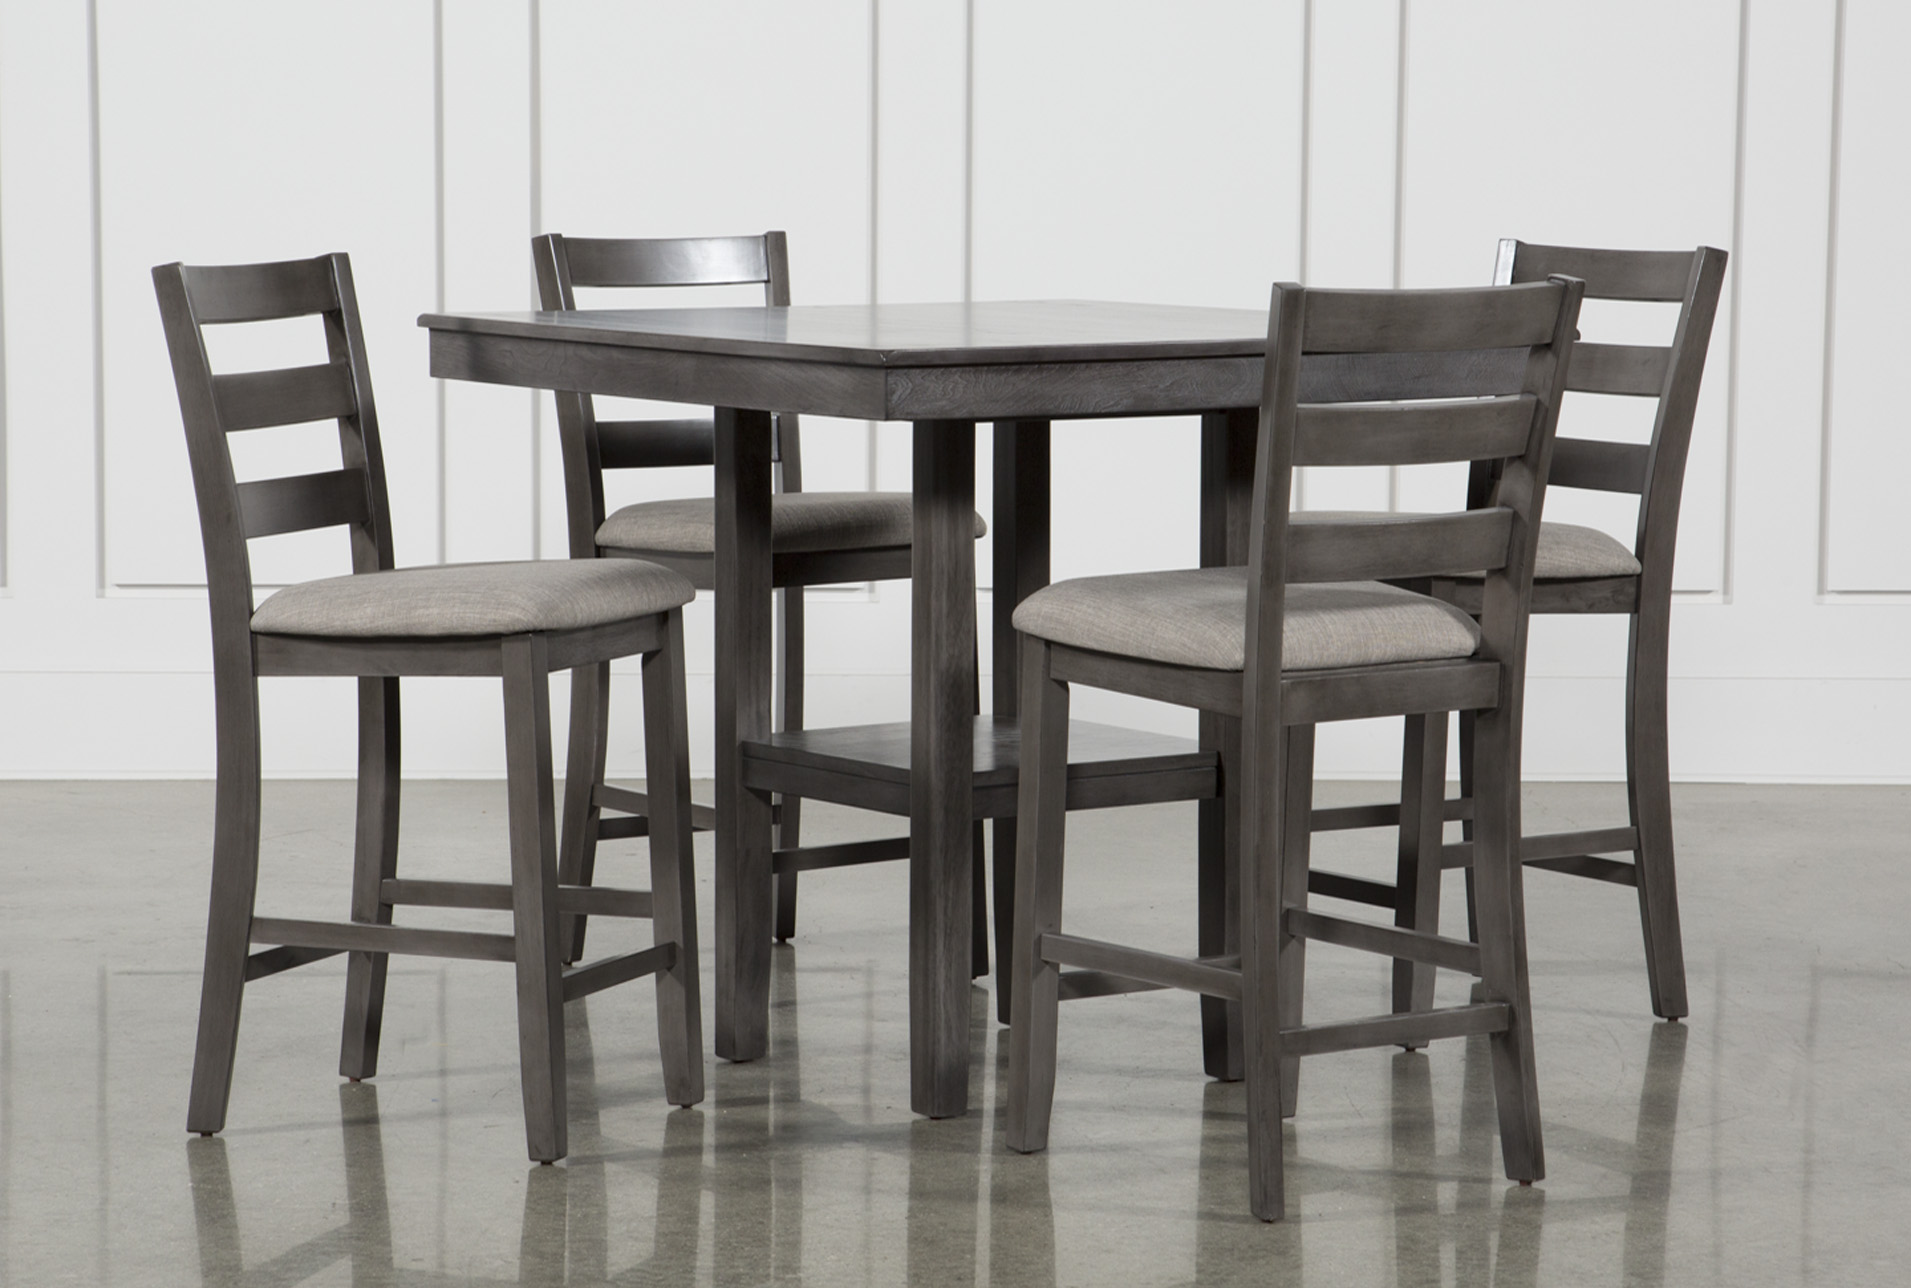 places to borrow tables and chairs upholstered vanity for bathroom dining room furniture collection living spaces jameson grey 5 piece counter set